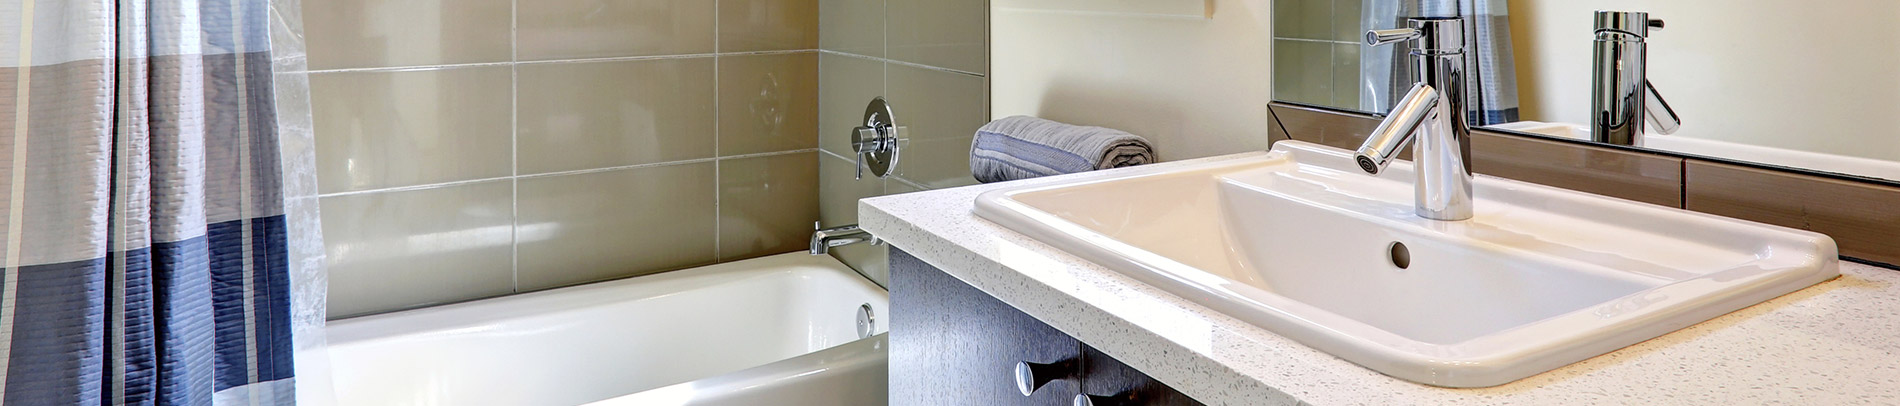 Bathroom remodeling in Manitowoc